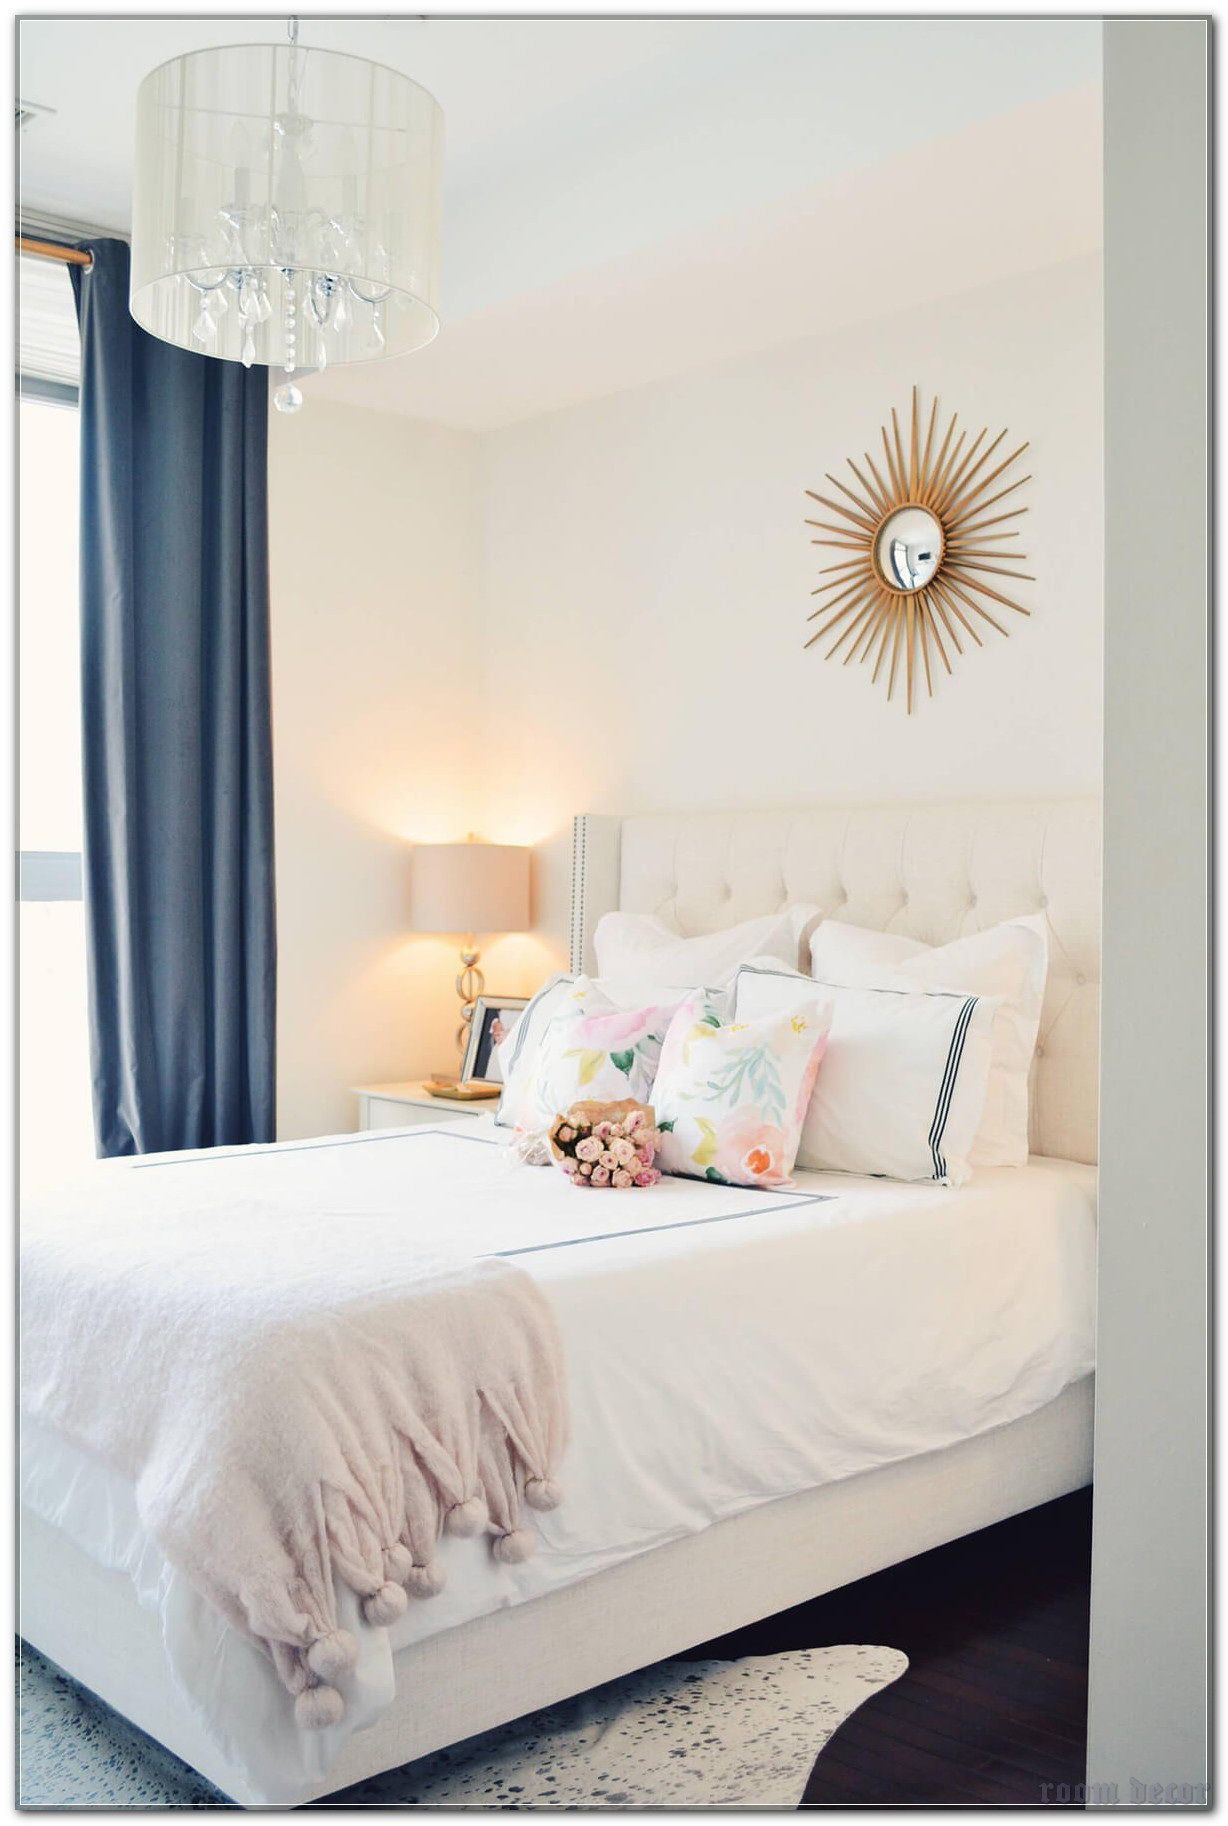 Fears of a Professional Room Decor